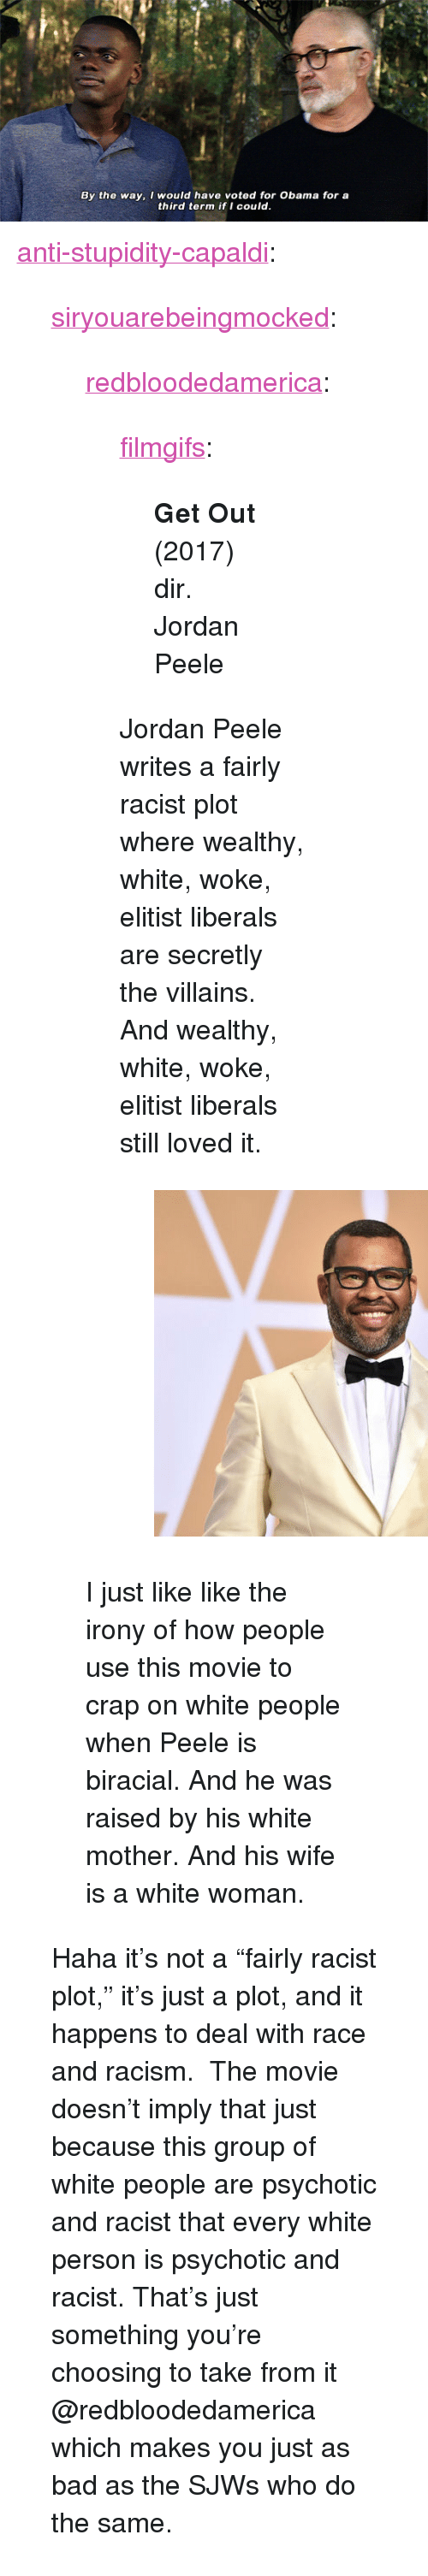 """Bad, Jordan Peele, and Obama: By the way, I would have voted for Obama for a  third term if I could. <p><a href=""""http://anti-stupidity-capaldi.tumblr.com/post/173721140685/siryouarebeingmocked-redbloodedamerica"""" class=""""tumblr_blog"""">anti-stupidity-capaldi</a>:</p>  <blockquote><p><a href=""""http://siryouarebeingmocked.tumblr.com/post/173720695475/redbloodedamerica-filmgifs-get-out-2017-dir"""" class=""""tumblr_blog"""">siryouarebeingmocked</a>:</p><blockquote> <p><a href=""""http://redbloodedamerica.tumblr.com/post/173714990808/filmgifs-get-out-2017-dir-jordan-peele"""" class=""""tumblr_blog"""">redbloodedamerica</a>:</p> <blockquote> <p><a href=""""https://filmgifs.tumblr.com/post/173651818346/get-out-2017-dir-jordan-peele"""" class=""""tumblr_blog"""">filmgifs</a>:</p> <blockquote><p><b>Get Out </b>(2017) dir. Jordan Peele</p></blockquote> <p>Jordan Peele writes a fairly racist plot where wealthy, white, woke, elitist liberals are secretly the villains. And wealthy, white, woke, elitist liberals still loved it.</p> <figure class=""""tmblr-full"""" data-orig-height=""""405"""" data-orig-width=""""540"""" data-orig-src=""""https://78.media.tumblr.com/b1ddf32ab9fe239daccb99a67e2e3ed4/tumblr_inline_p8dfdevmir1r1jtxd_540.jpg""""><img src=""""https://78.media.tumblr.com/6dd450247d21e6d245865a0e1707549c/tumblr_inline_p8fkan3Rjv1r1jtxd_540.jpg"""" class="""""""" data-orig-height=""""405"""" data-orig-width=""""540"""" data-orig-src=""""https://78.media.tumblr.com/b1ddf32ab9fe239daccb99a67e2e3ed4/tumblr_inline_p8dfdevmir1r1jtxd_540.jpg""""/></figure></blockquote> <p>I just like like the irony of how people use this movie to crap on white people when Peele is biracial. And he was raised by his white mother. And his wife is a white woman.</p> </blockquote> <p>Haha it's not a""""fairly racist plot,"""" it's just a plot, and it happens to deal with race and racism. The movie doesn't imply that just because this group of white people are psychotic and racist that every white person is psychotic and racist. That's just something you're choosing to take from it @redbloodeda"""